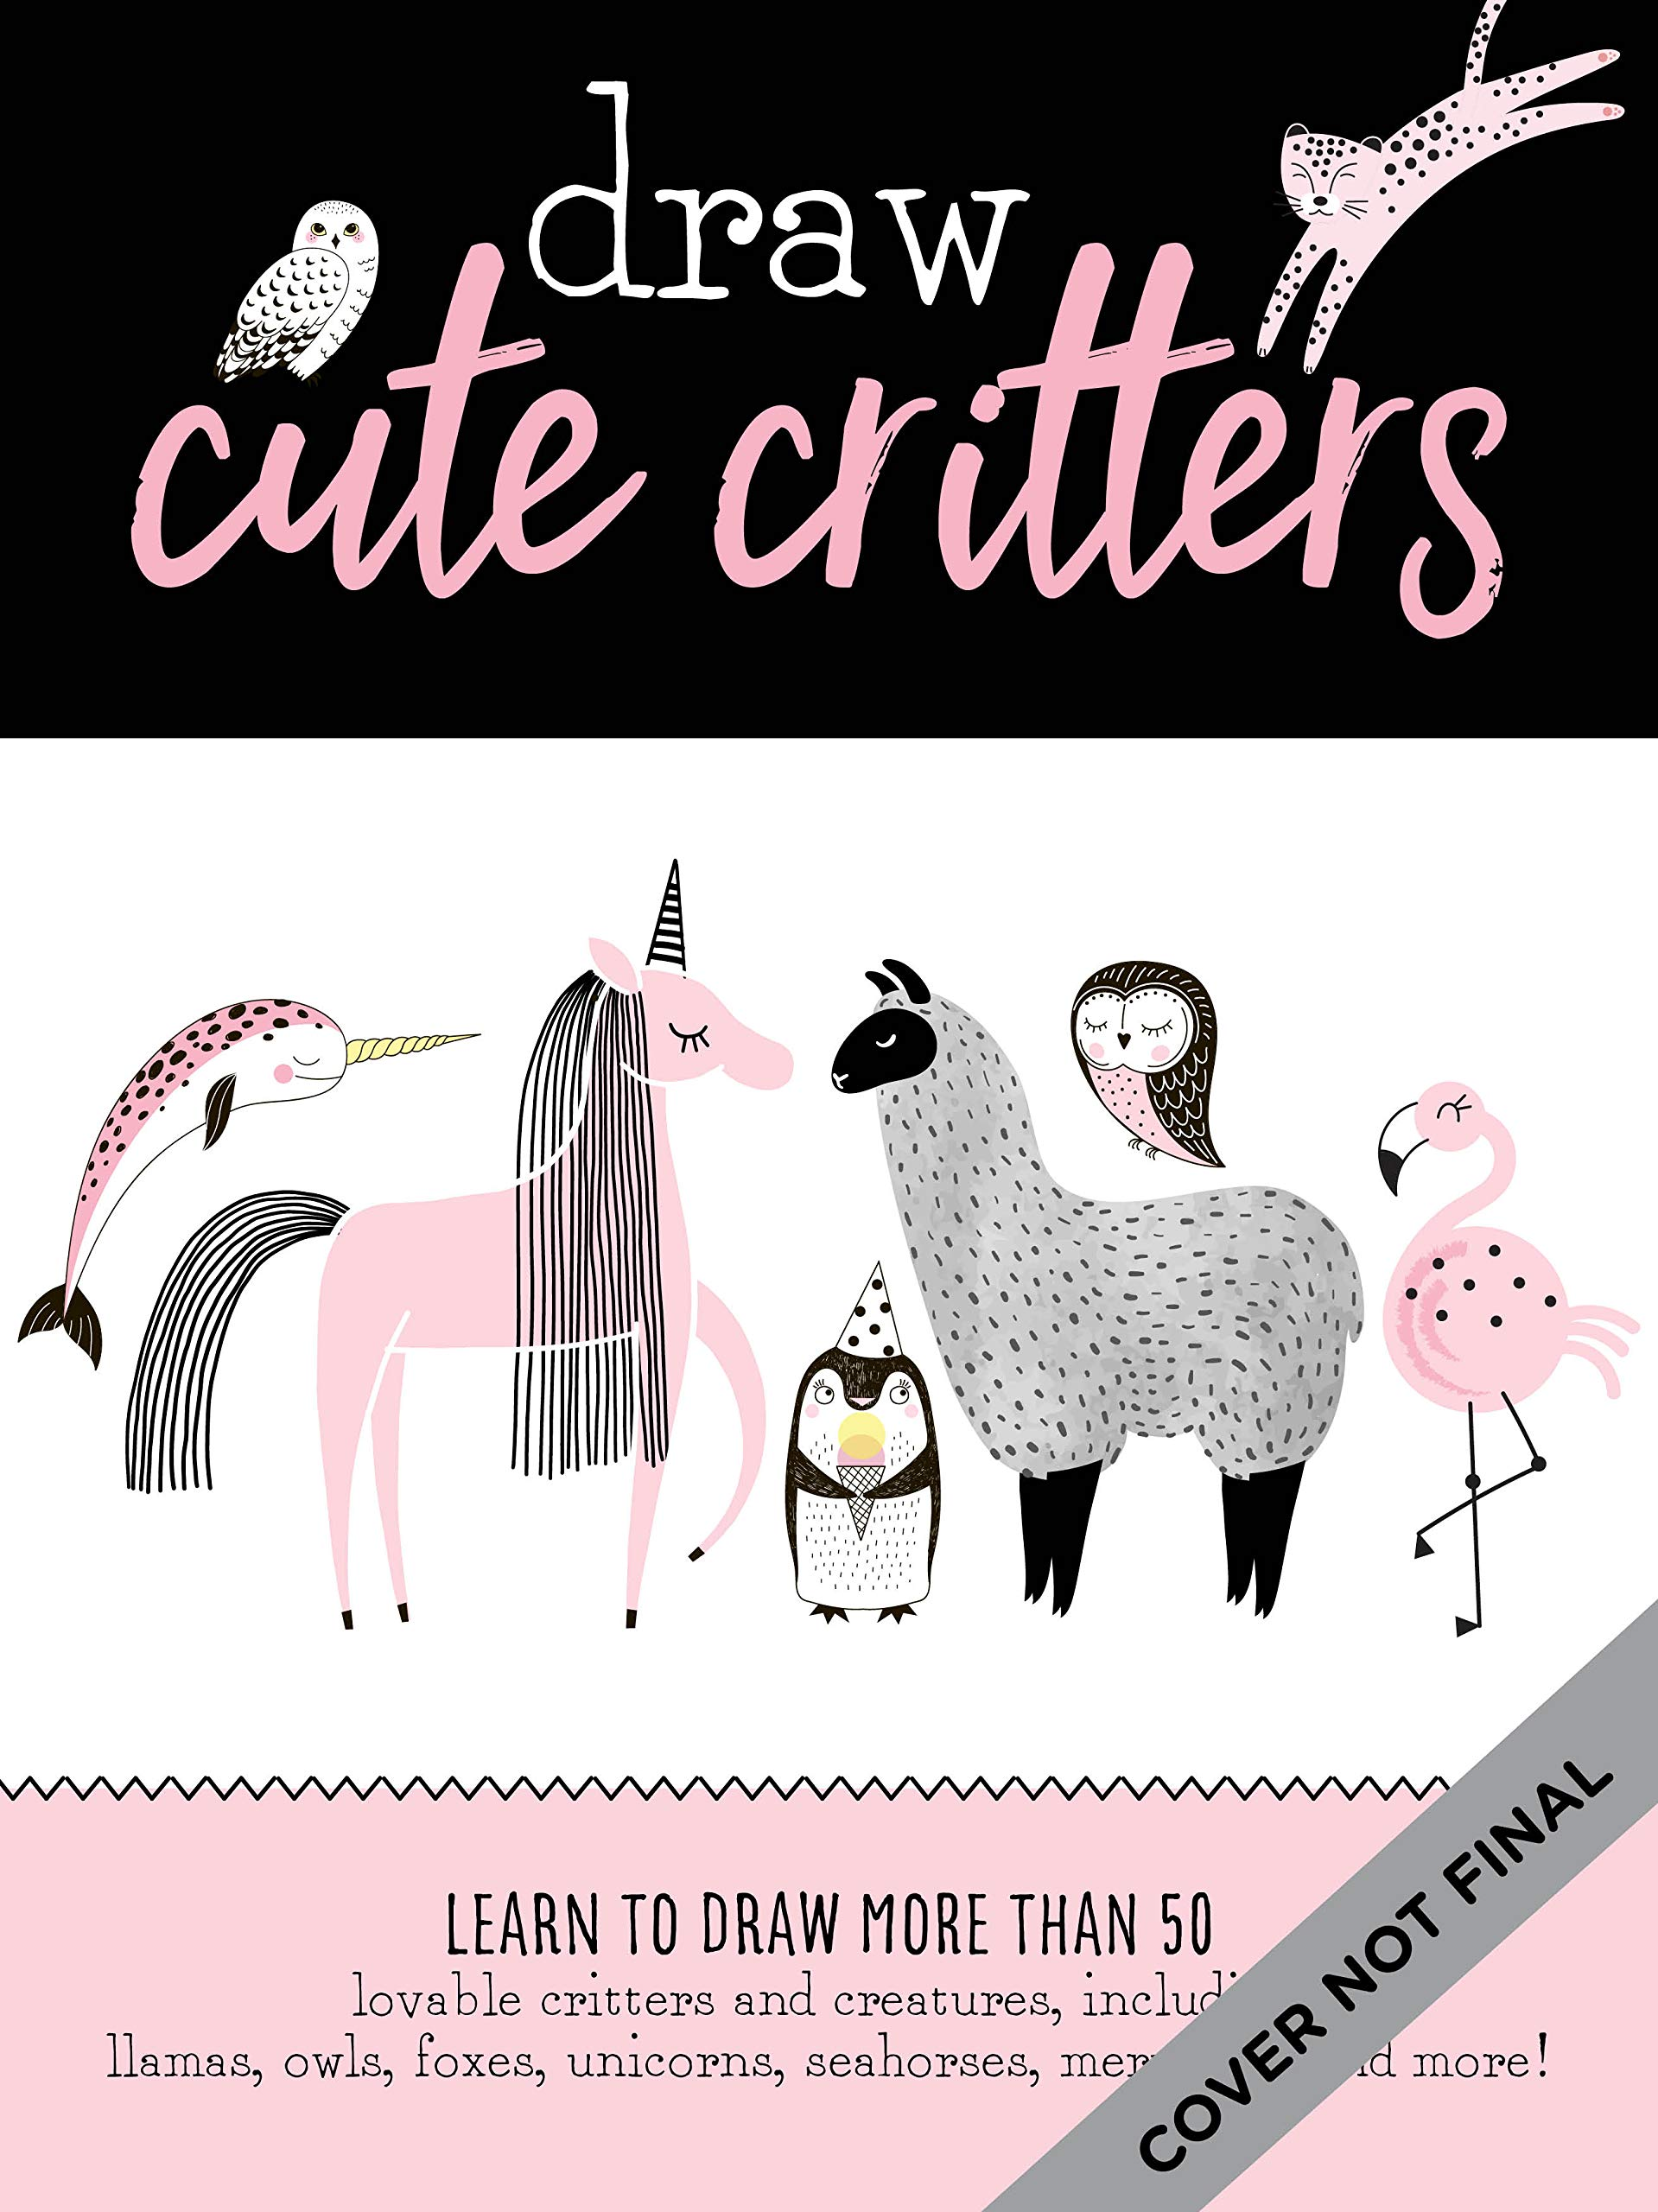 Art Makers: Draw Cute Critters: Learn to draw more than 50 lovable critters and creatures, including llamas, owls, foxes, unicorns, seahorses, mermaids, and more!